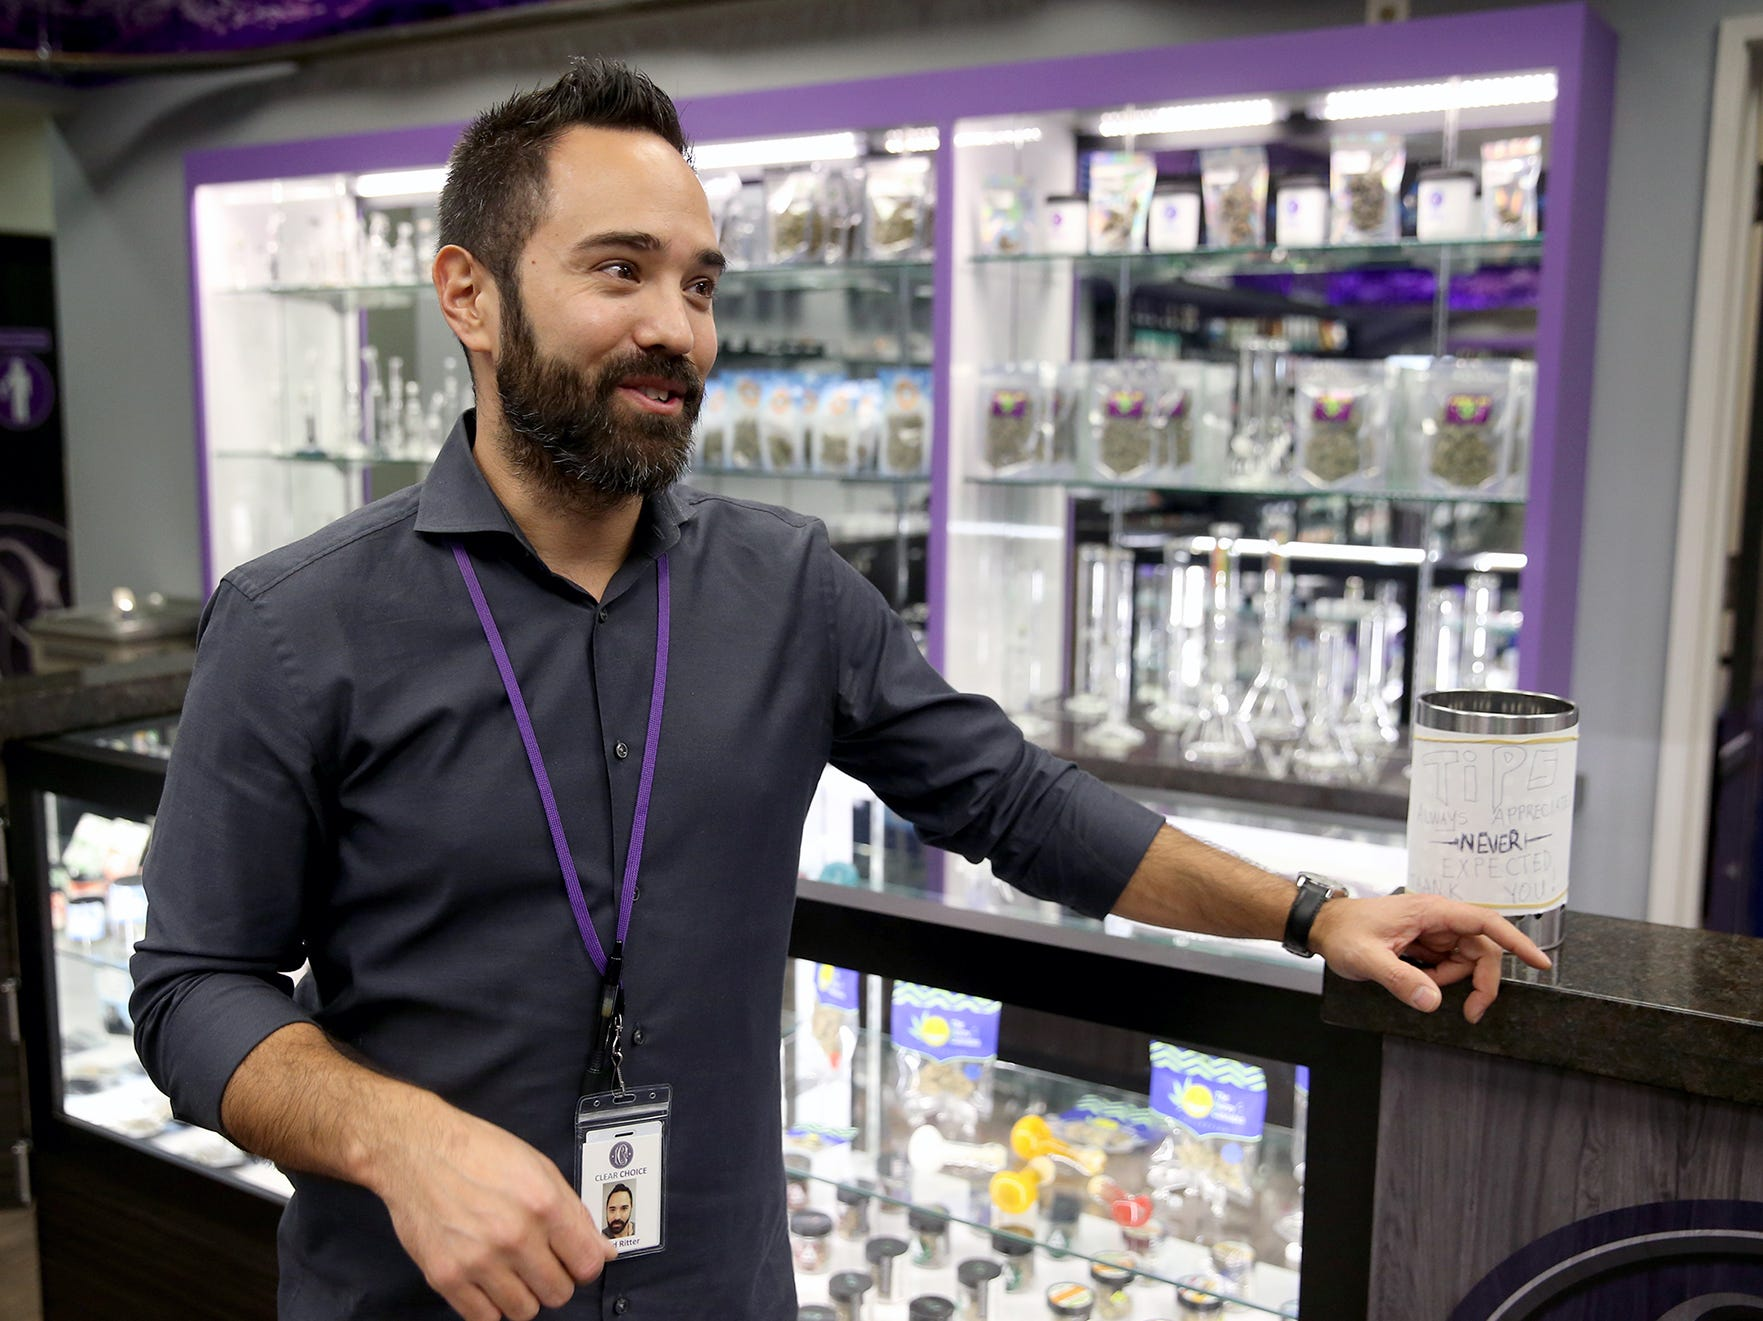 Chad Ritter is one of three owners of Clear Choice Cannabis in East Bremerton.